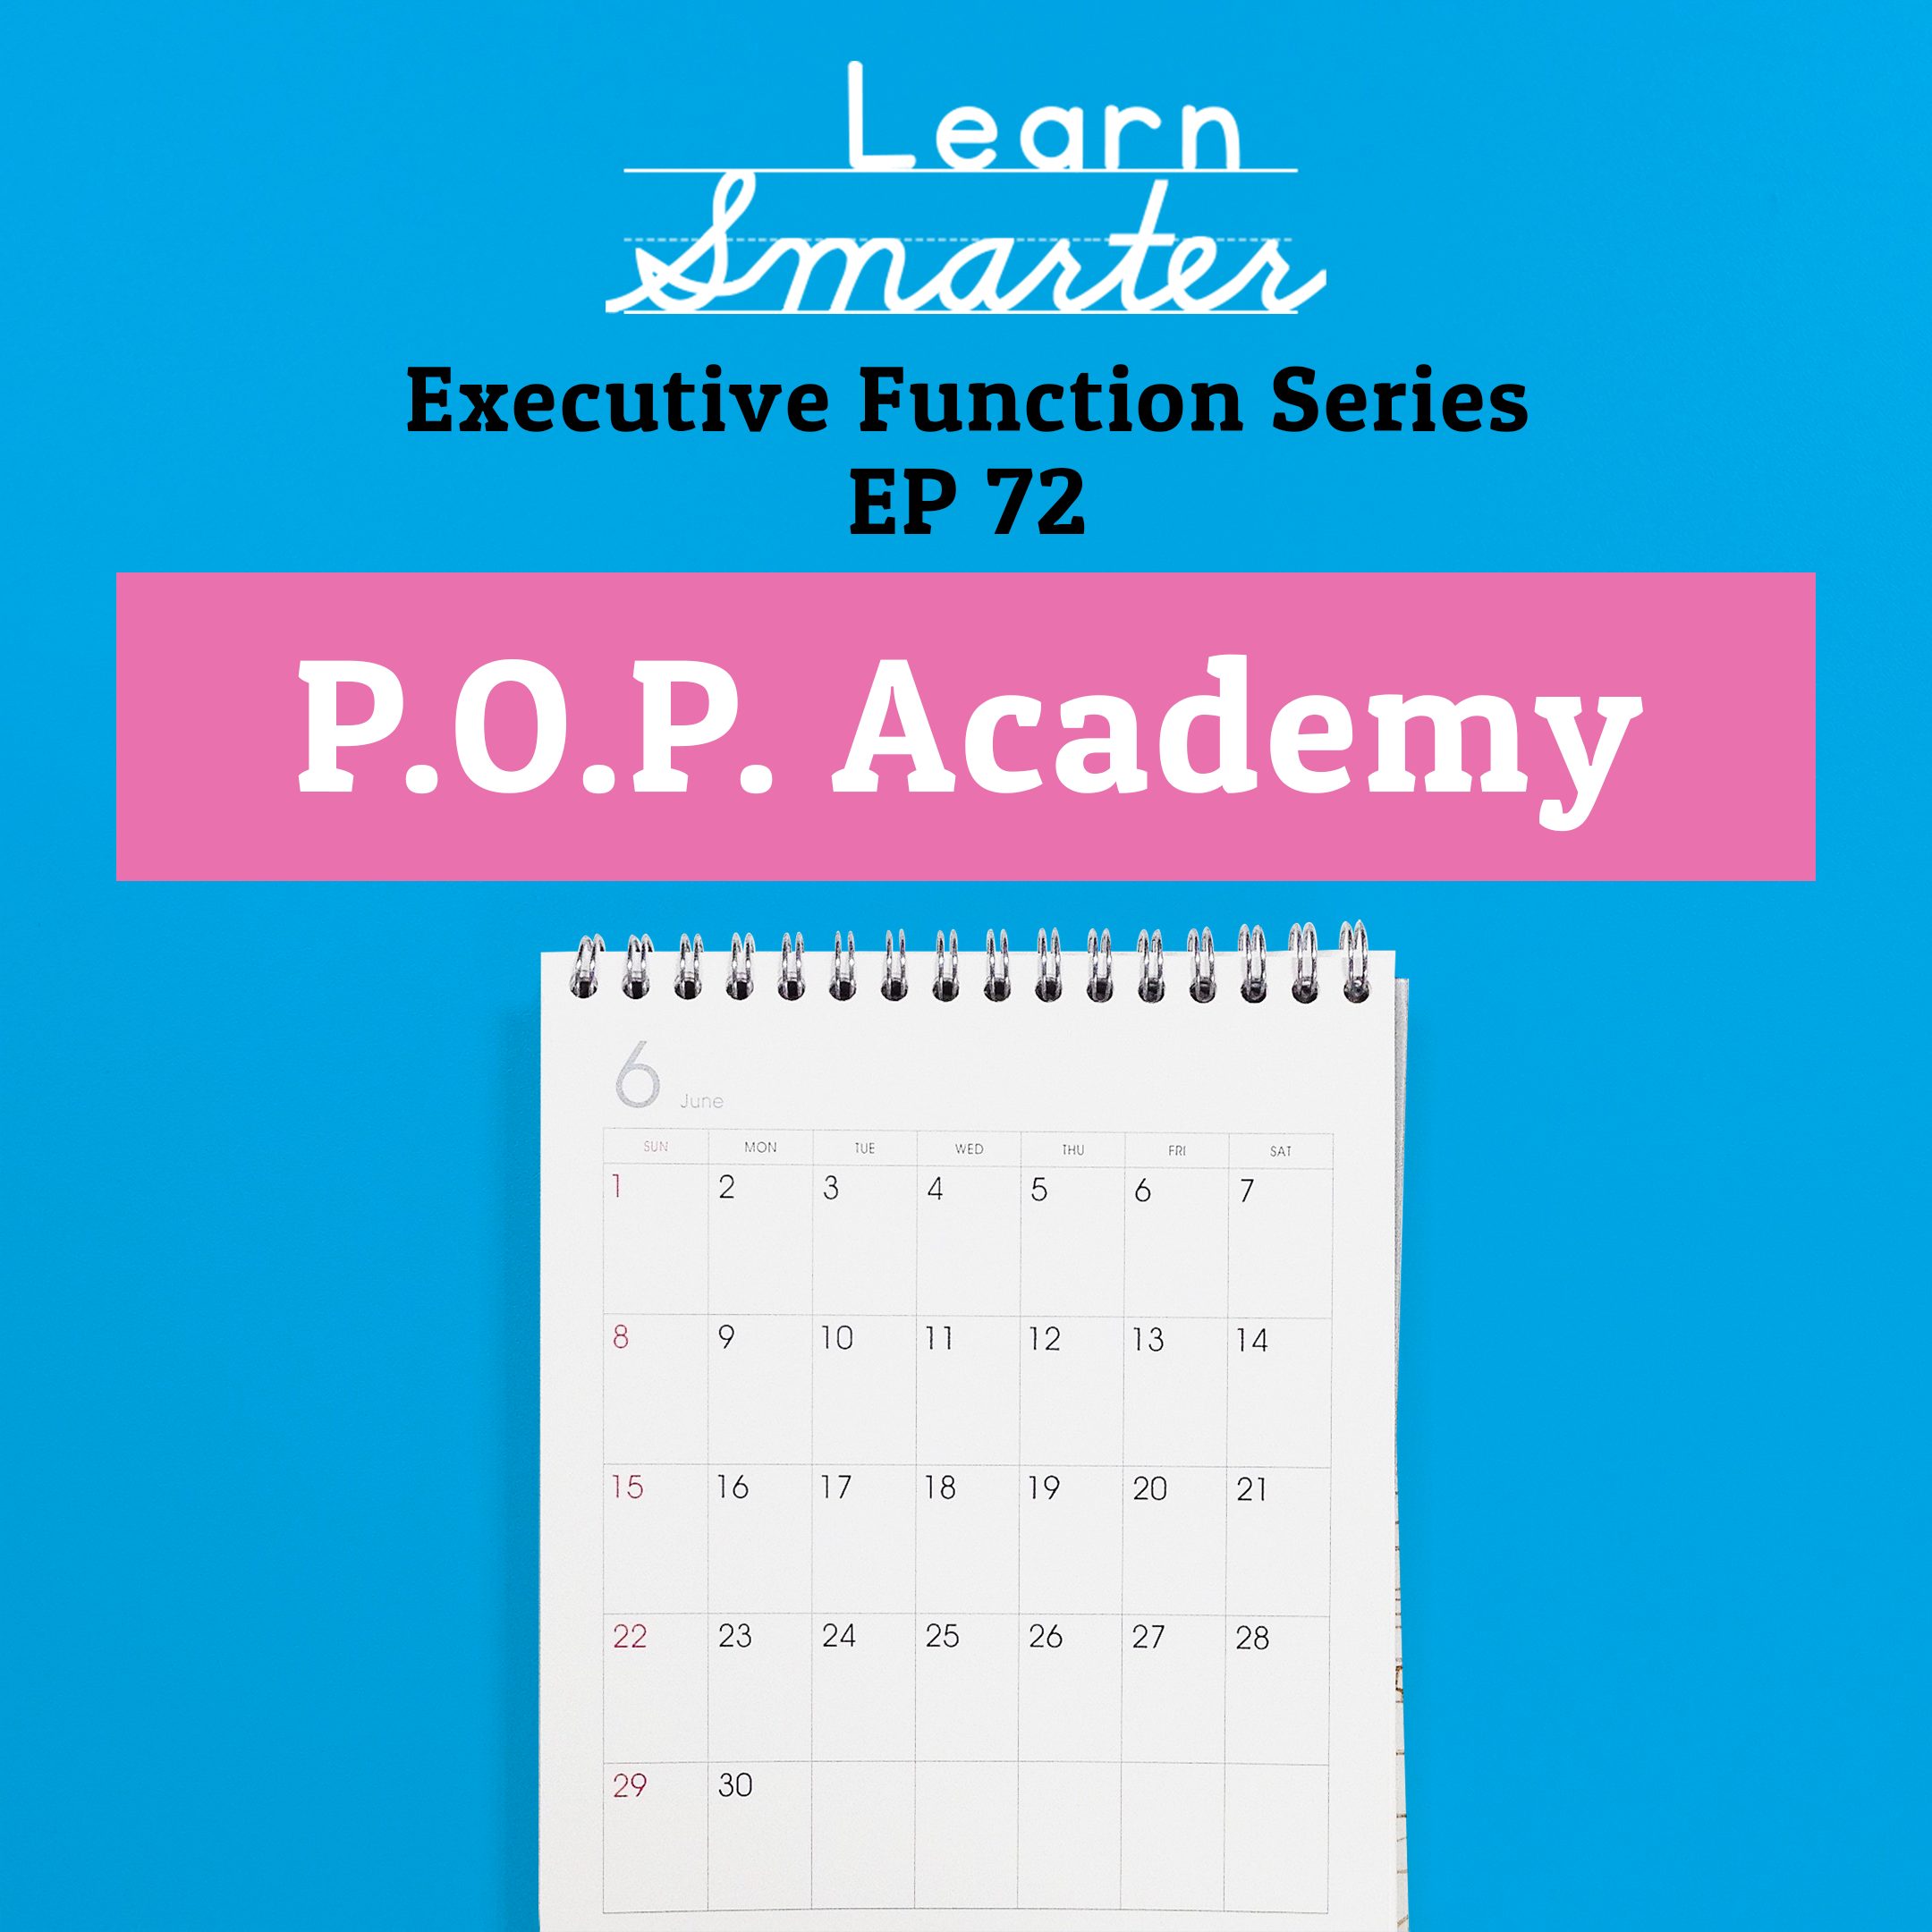 72: P.O.P. Academy (Executive Function Series)